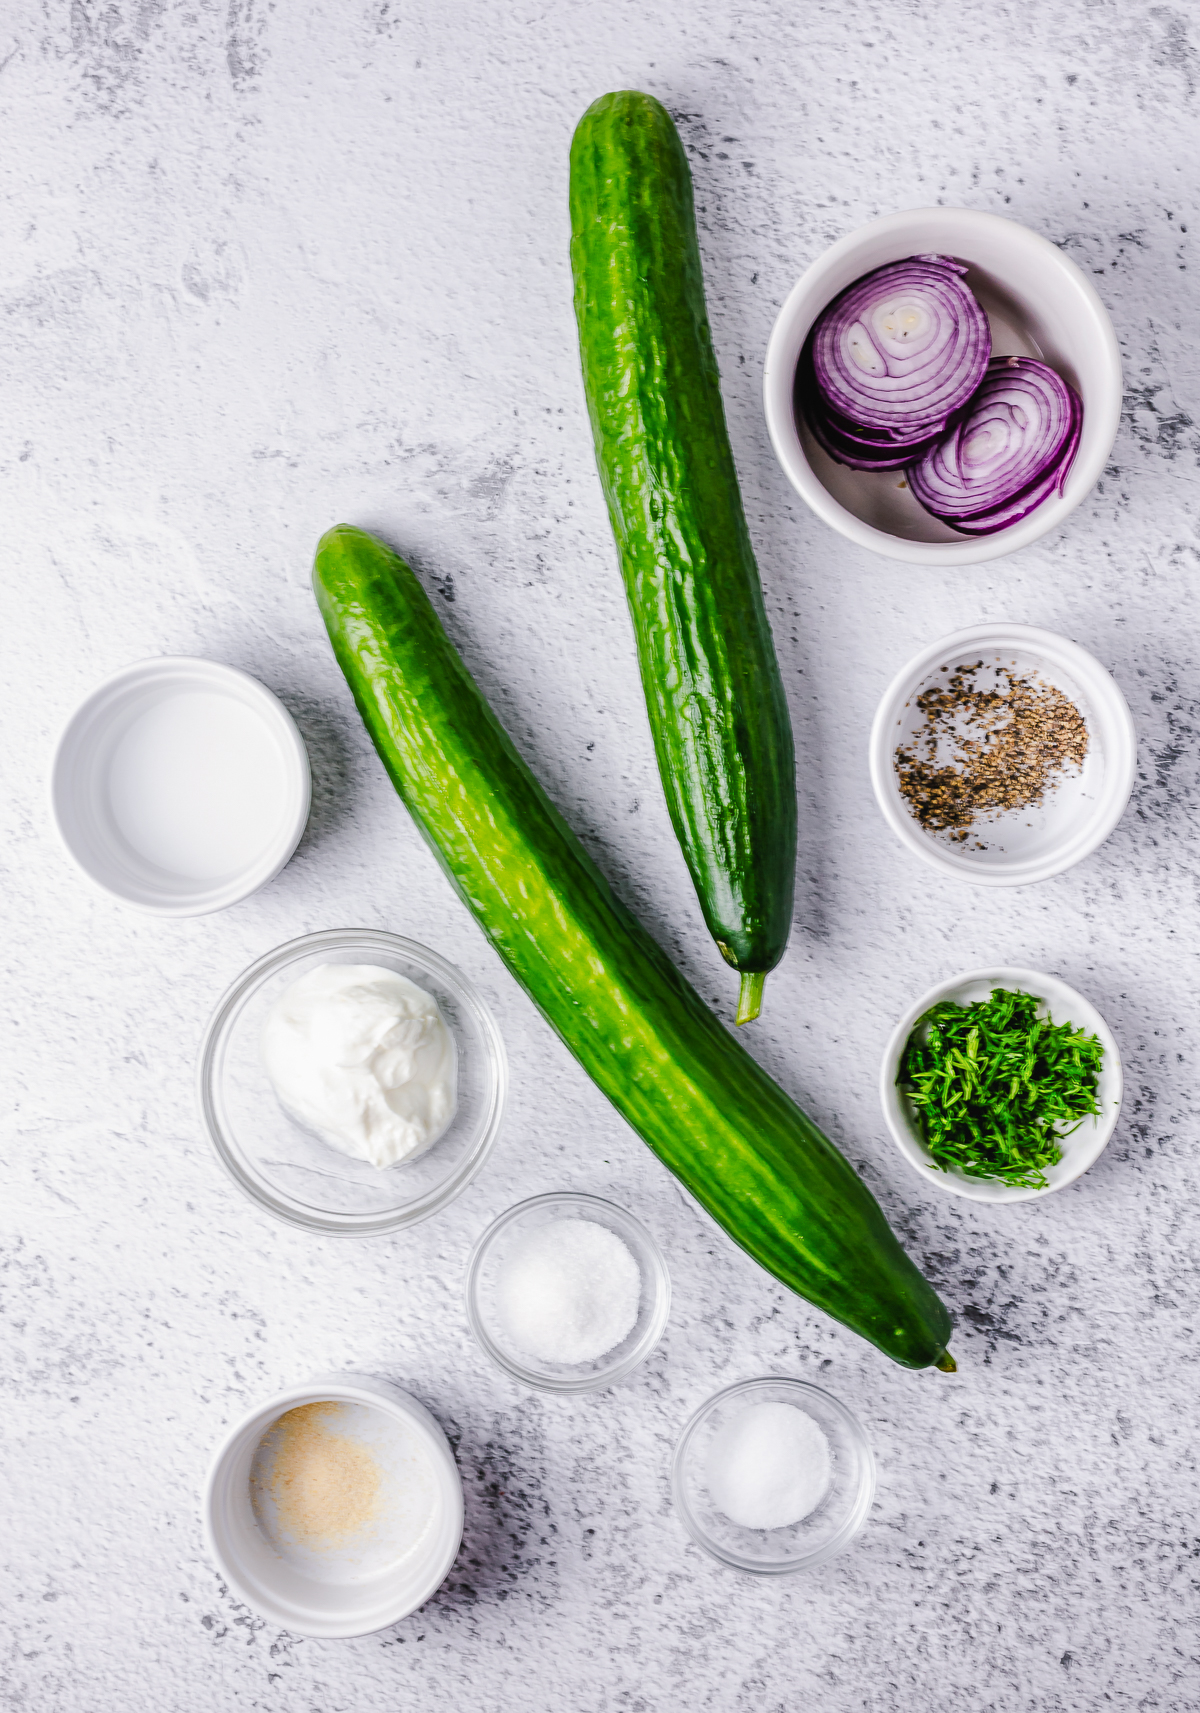 Ingredients needed to make a Dill Cucumber Salad